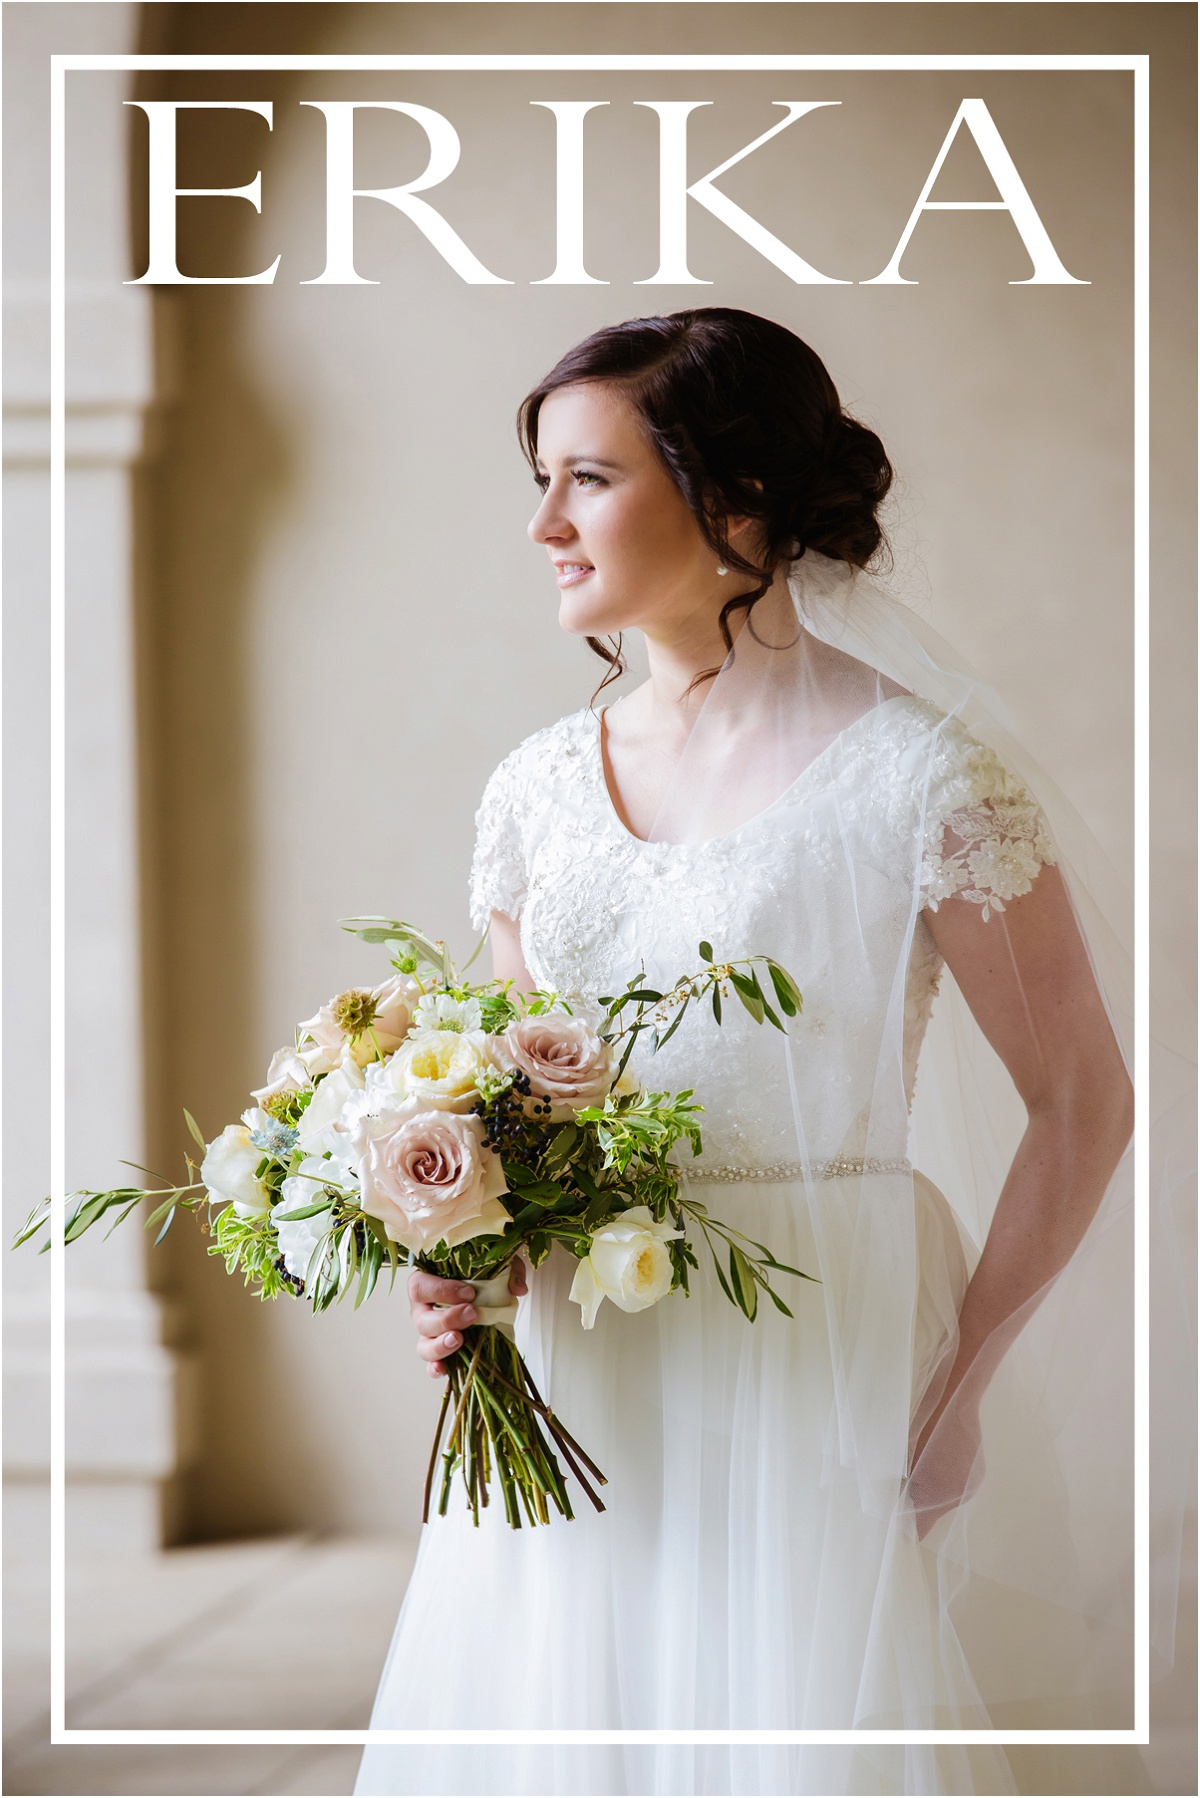 Terra Cooper Photography Weddings Brides 2015_5361.jpg